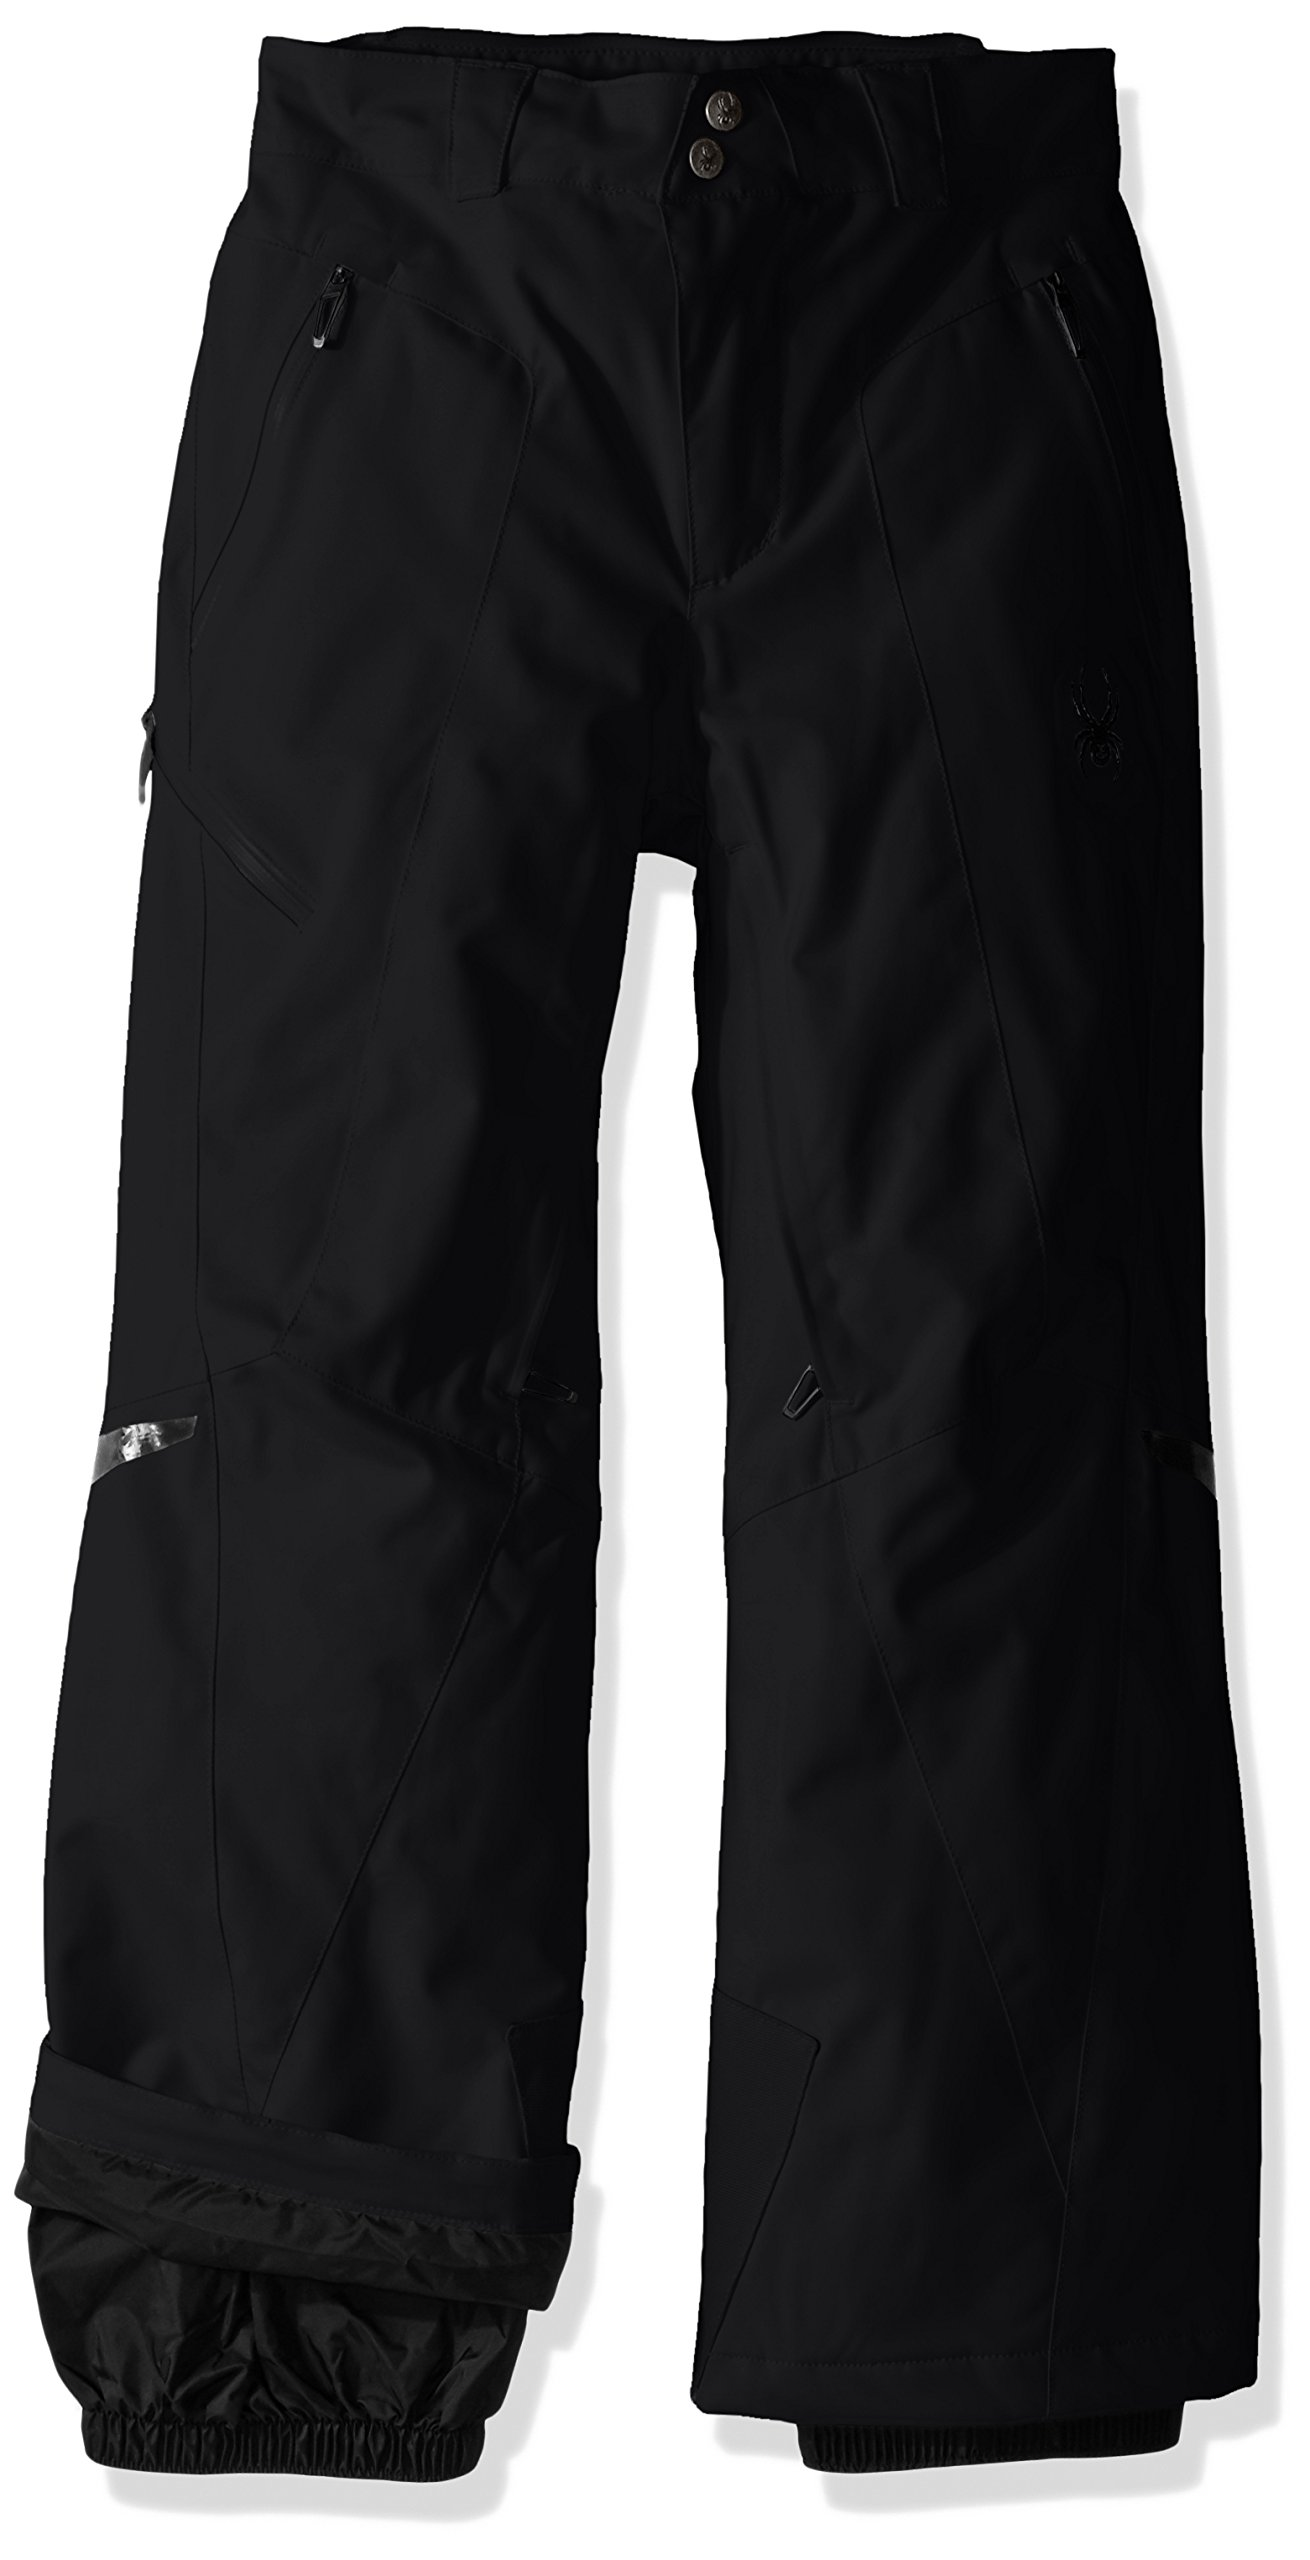 Spyder Boys Bormio Pants, Size 14, Black